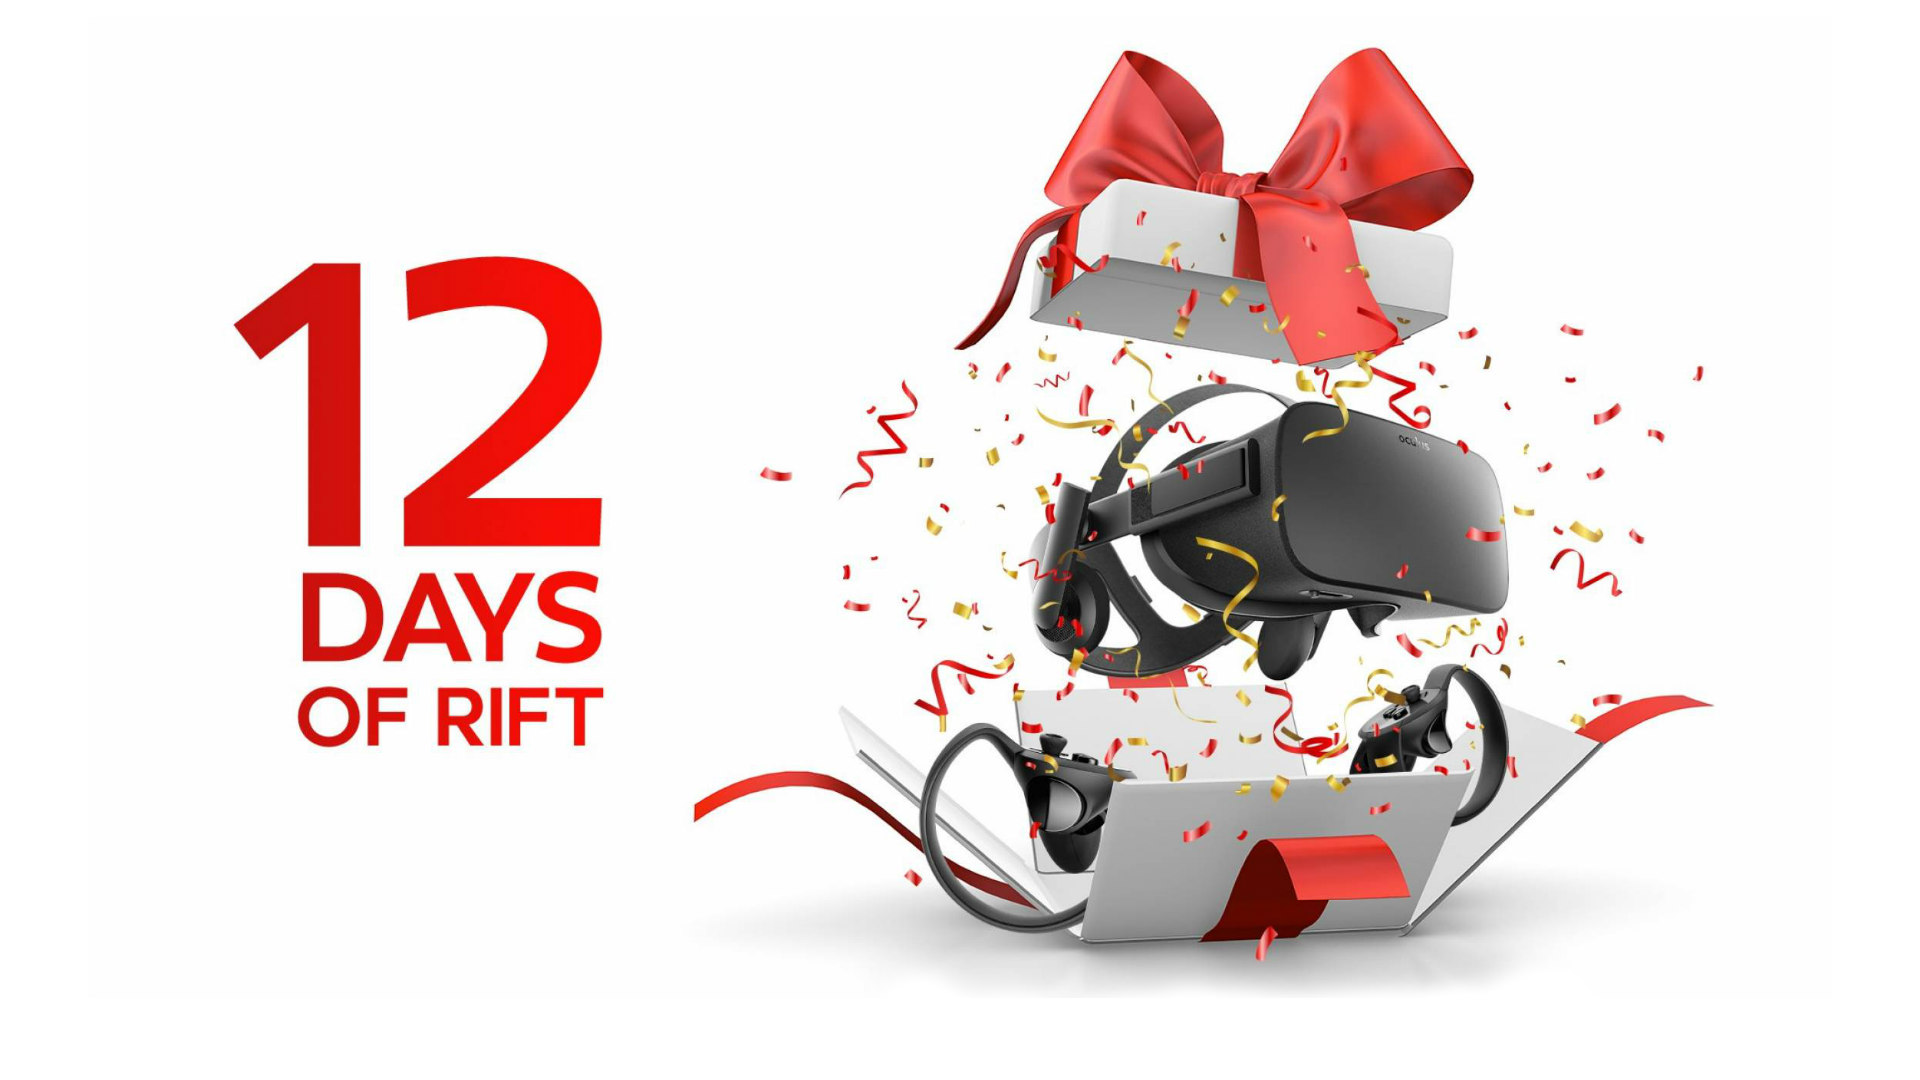 Oculus' 12 Days of Rift Sweepstakes Could Win You a New Rift